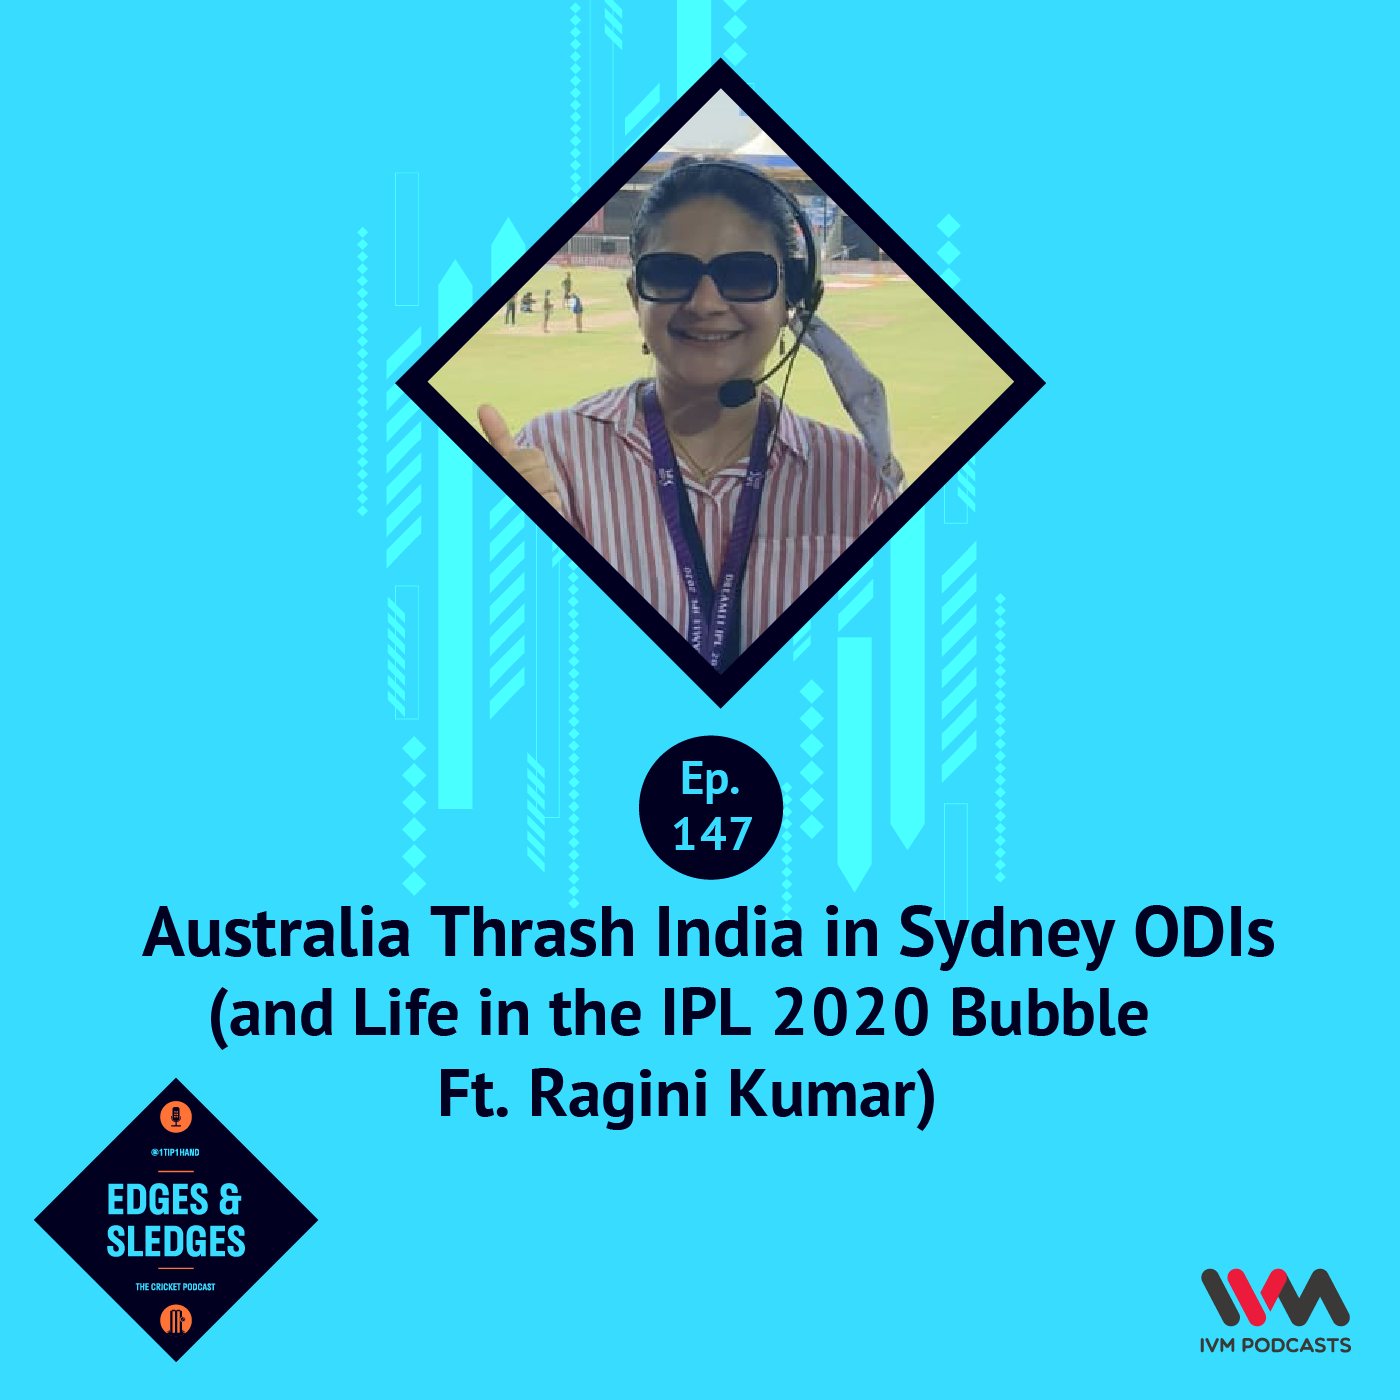 Ep. 147: Australia Thrash India in Sydney ODIs (and Life in the IPL 2020 Bubble Ft. Ragini Kumar)